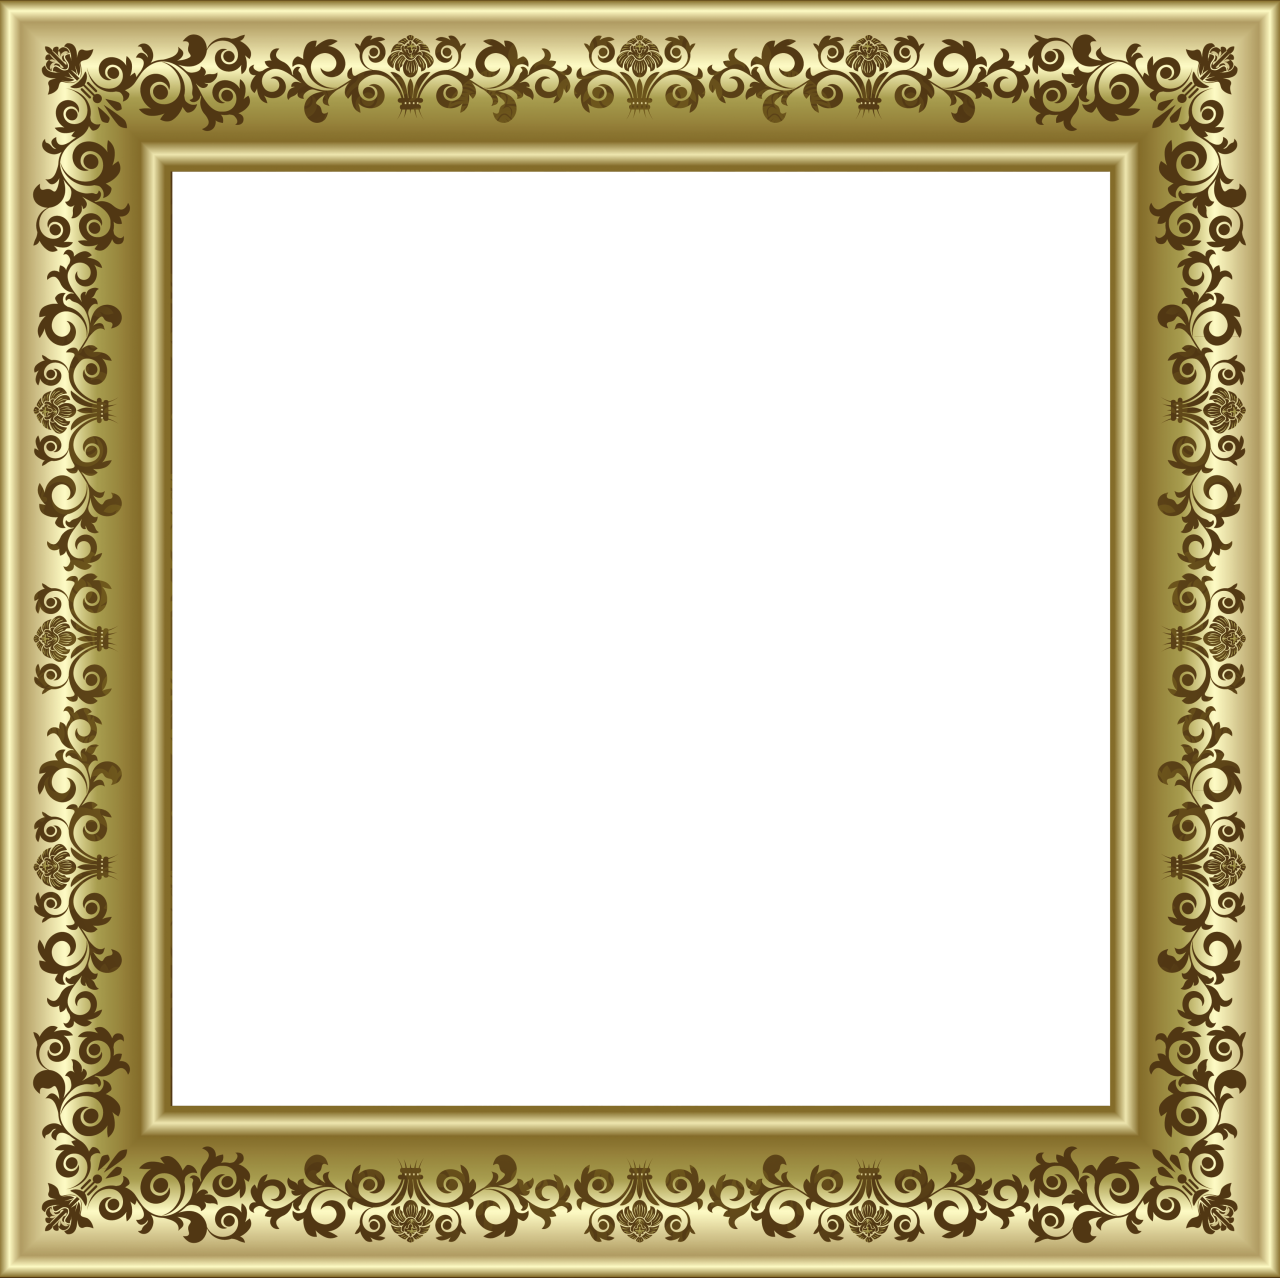 yellow frame png | Gold u0026